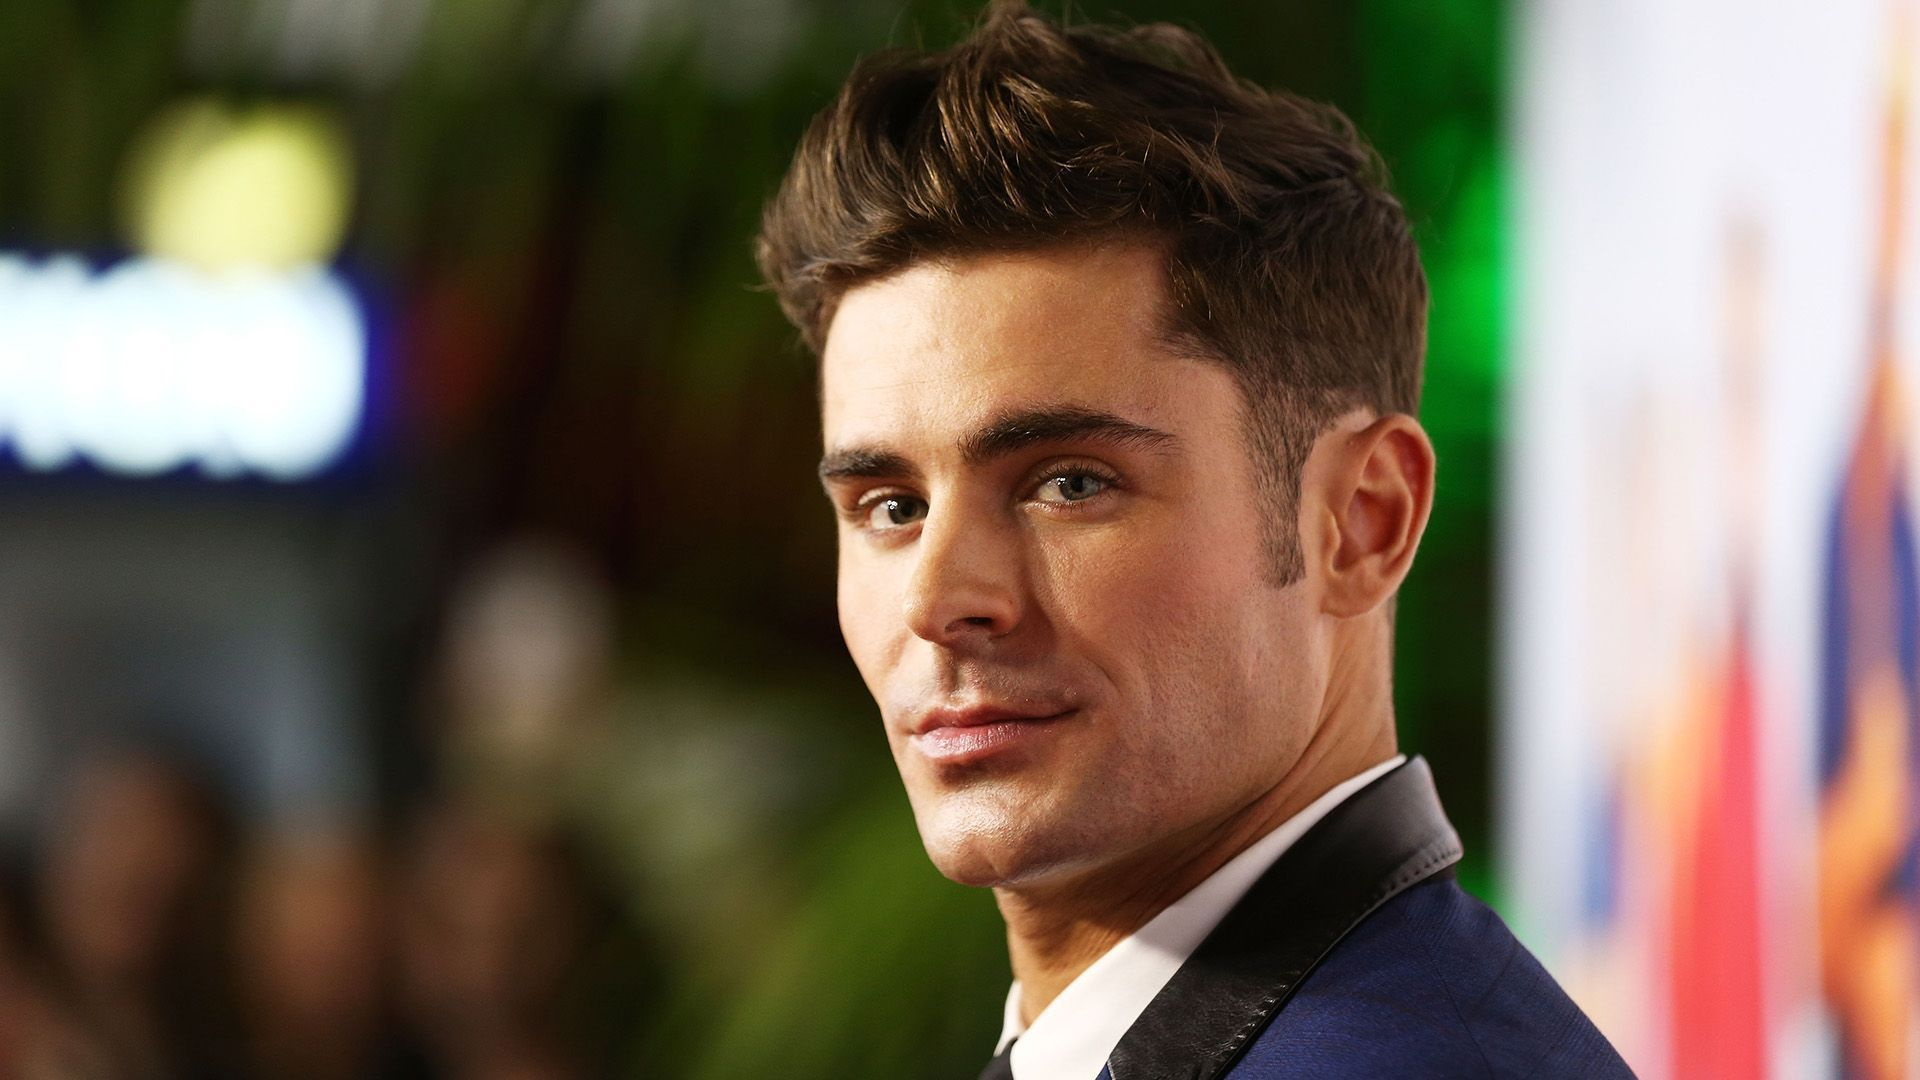 SYDNEY, AUSTRALIA - MAY 18:  Zac Efron attends the Australian premiere of 'Baywatch' at Hoyts EQ on May 18, 2017 in Sydney, Australia.  (Photo by Brendon Thorne/Getty Images for Paramount Pictures)